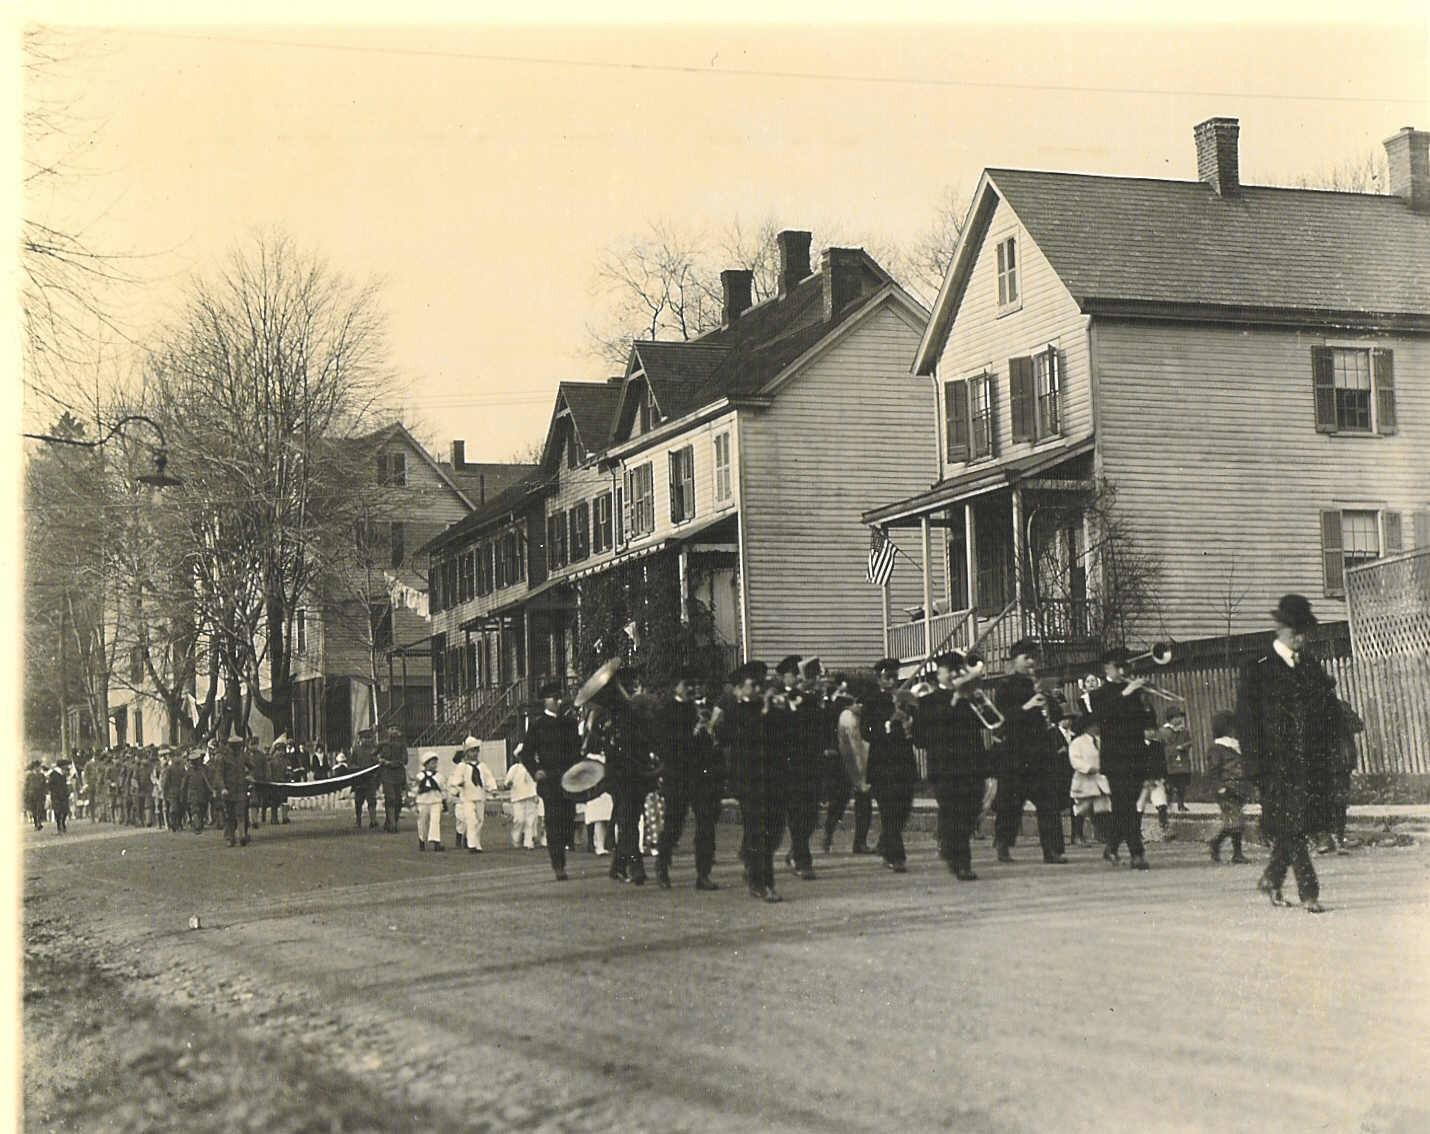 Parade on MacCulloch Avenue, circa 1920